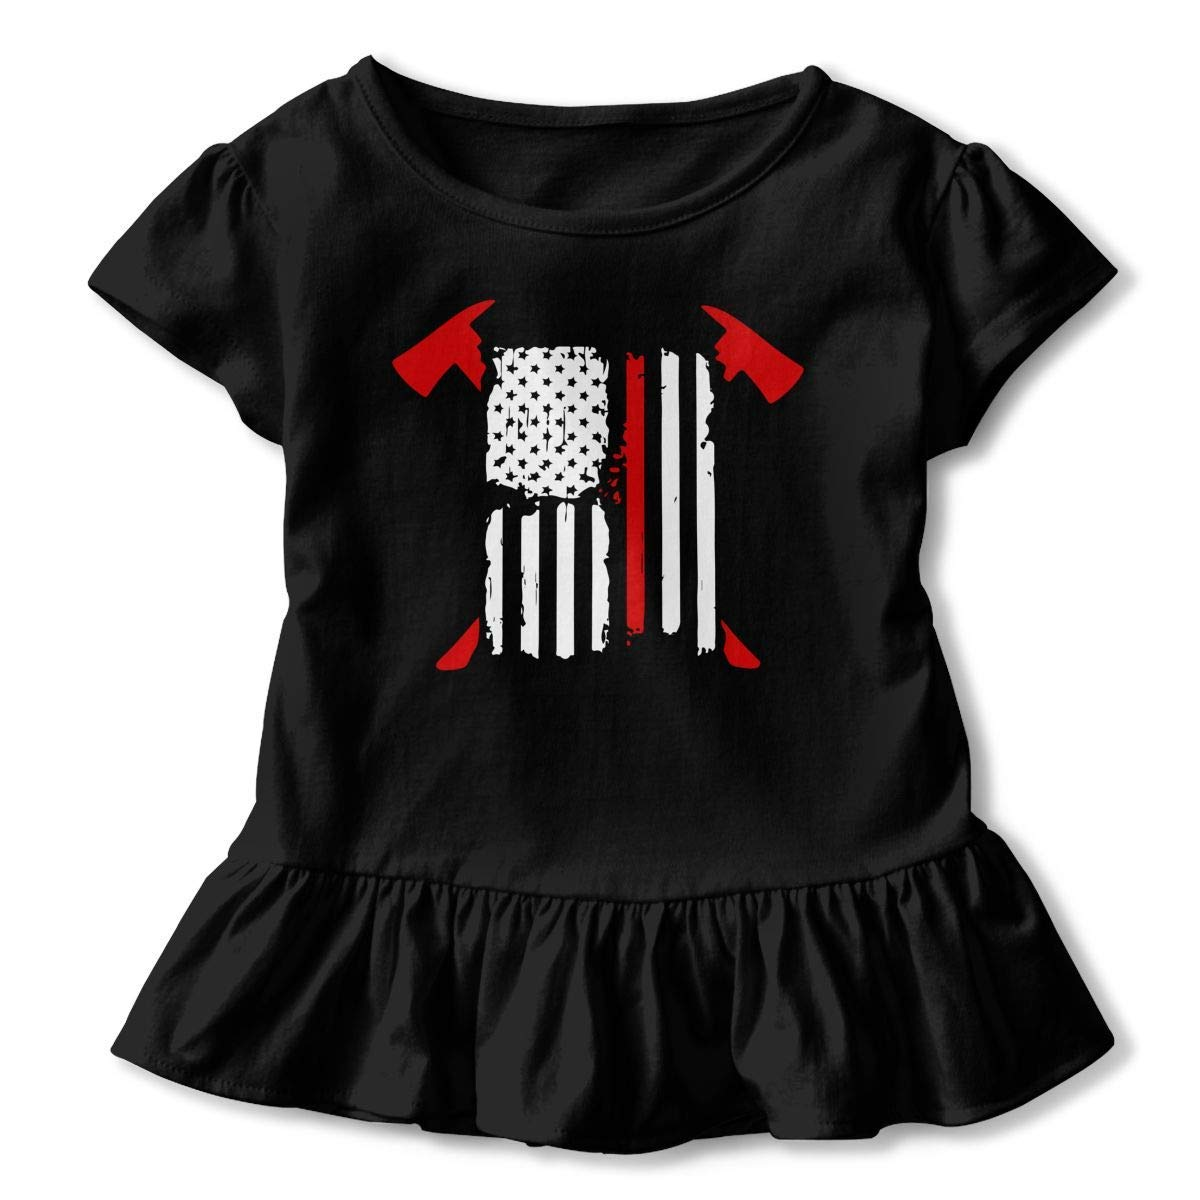 2-6T Casual Tunic Shirt Dress with Flounces Girls Short Sleeve Firefighter Red Line American Flag Shirts